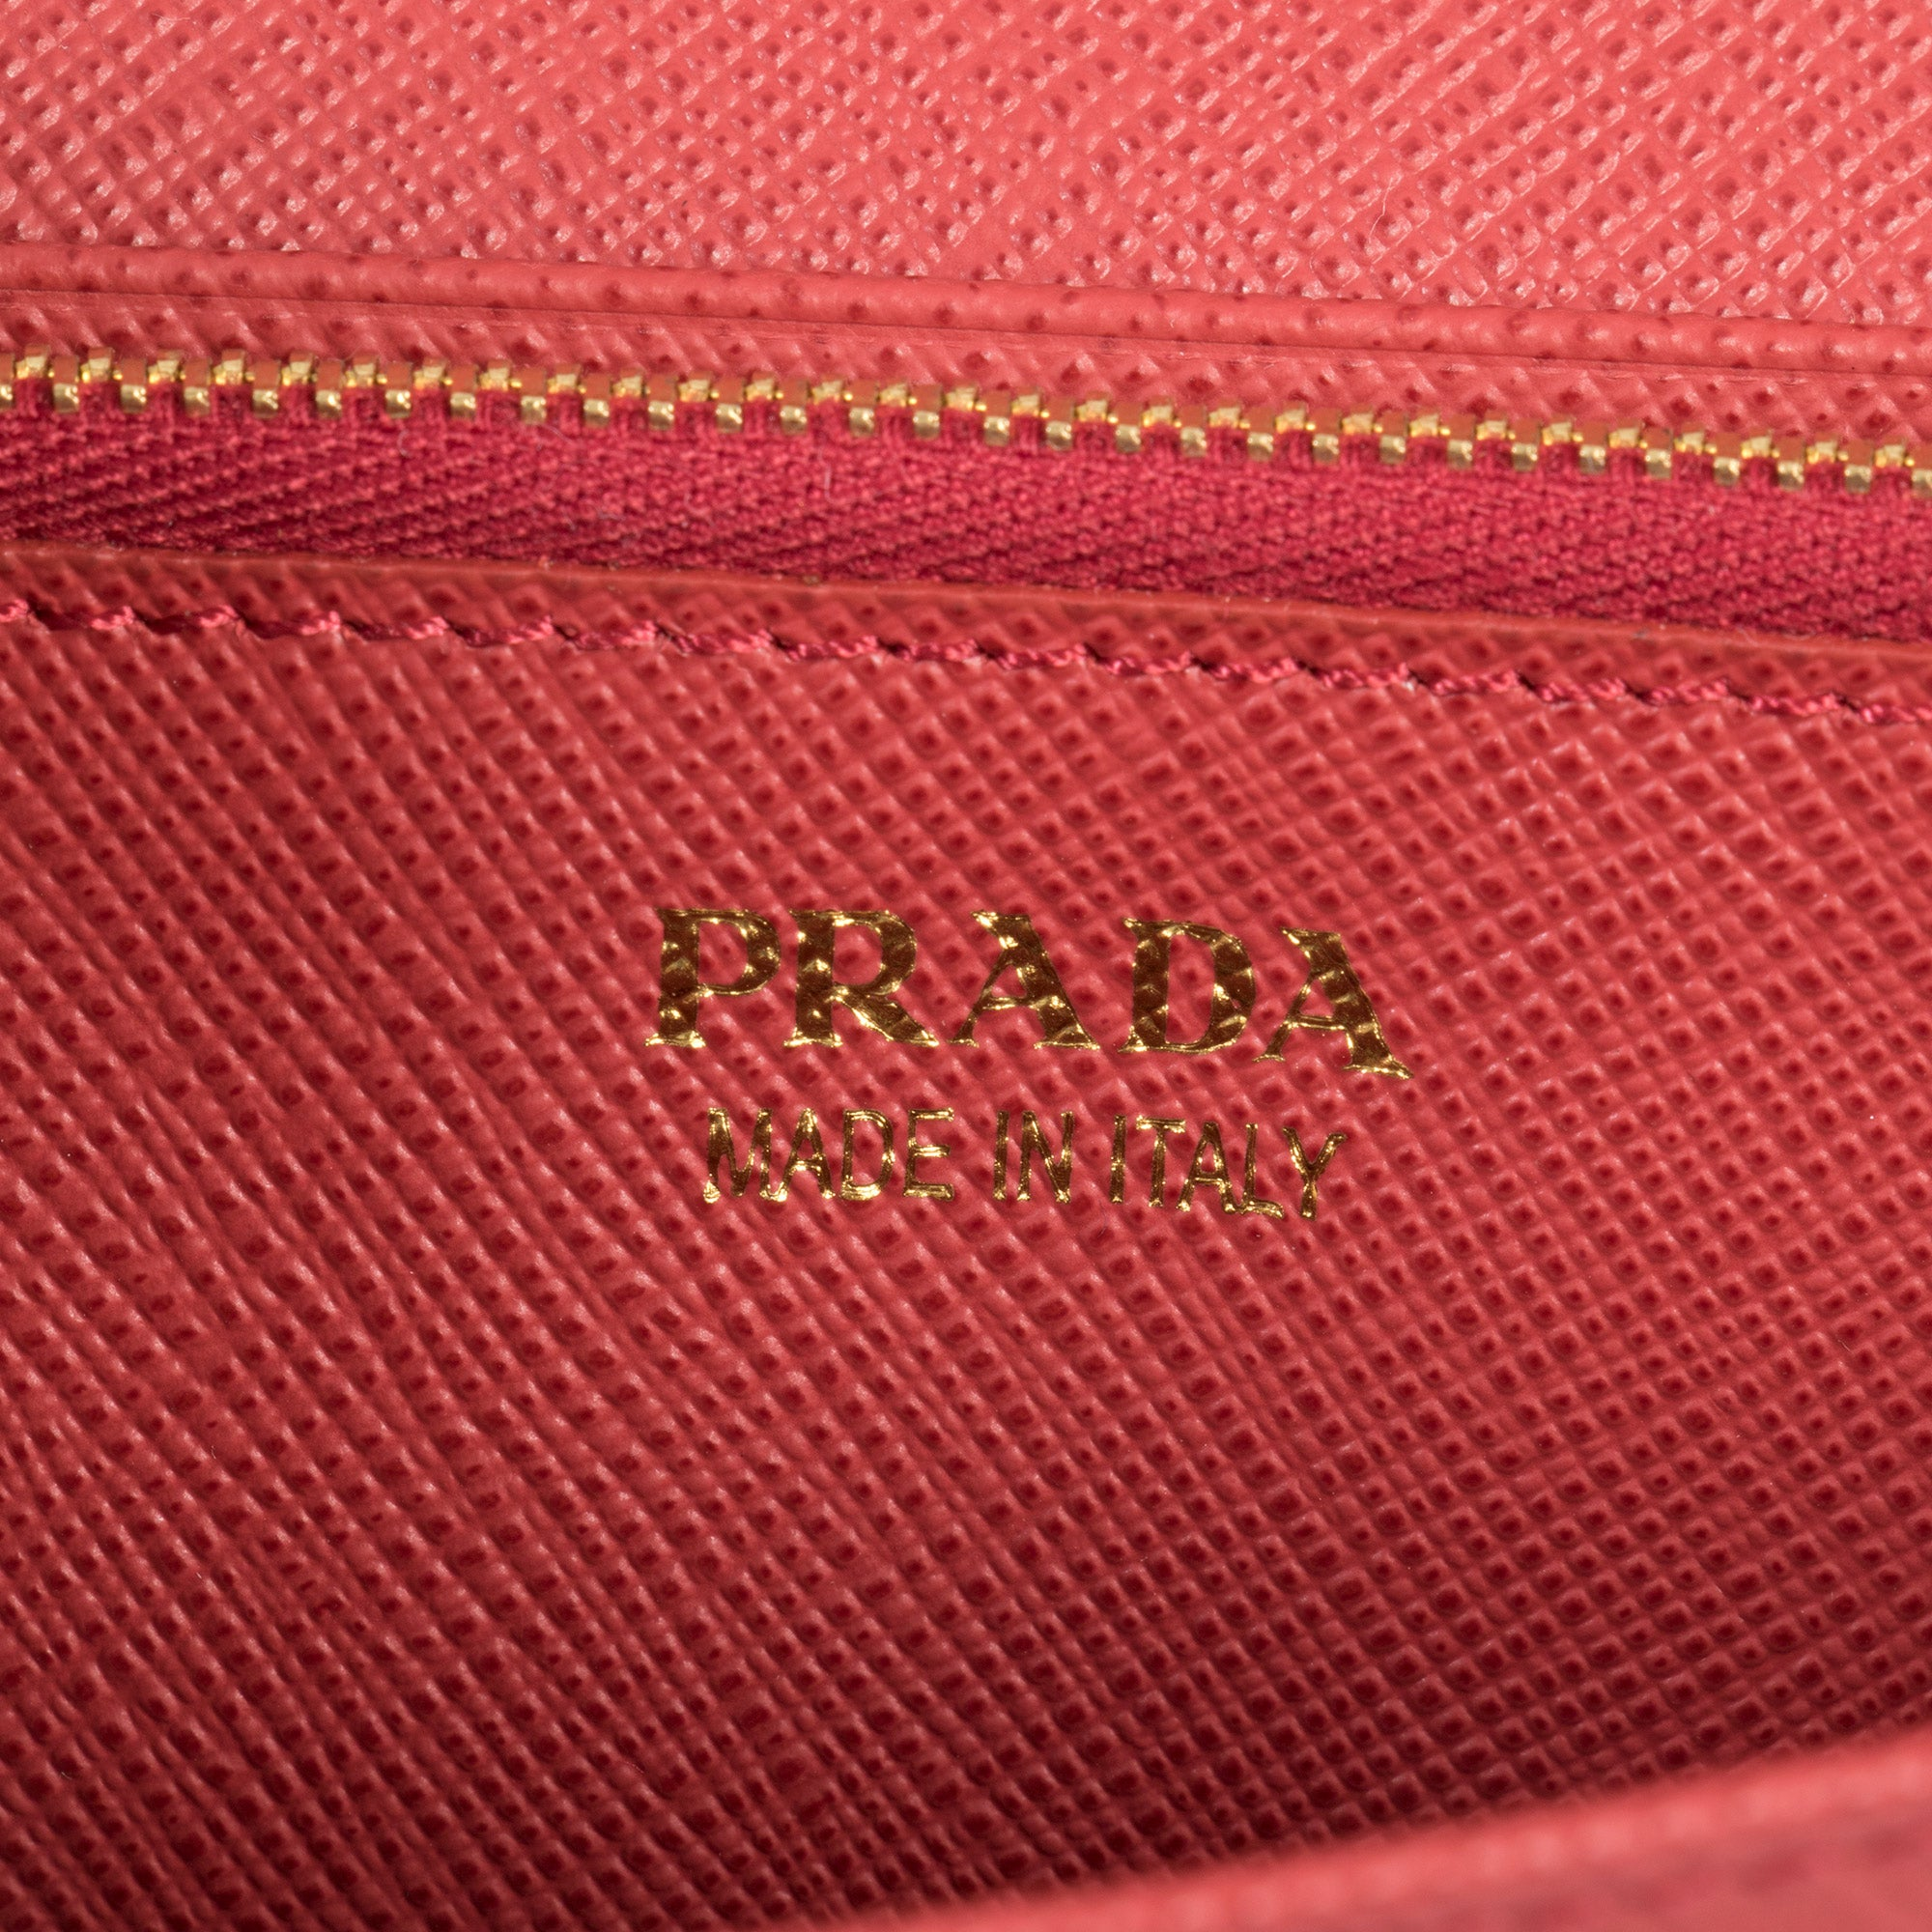 Prada Red Saffiano Leather Flap Wallet With Bow Detail 1MH132 ZTM F068Z